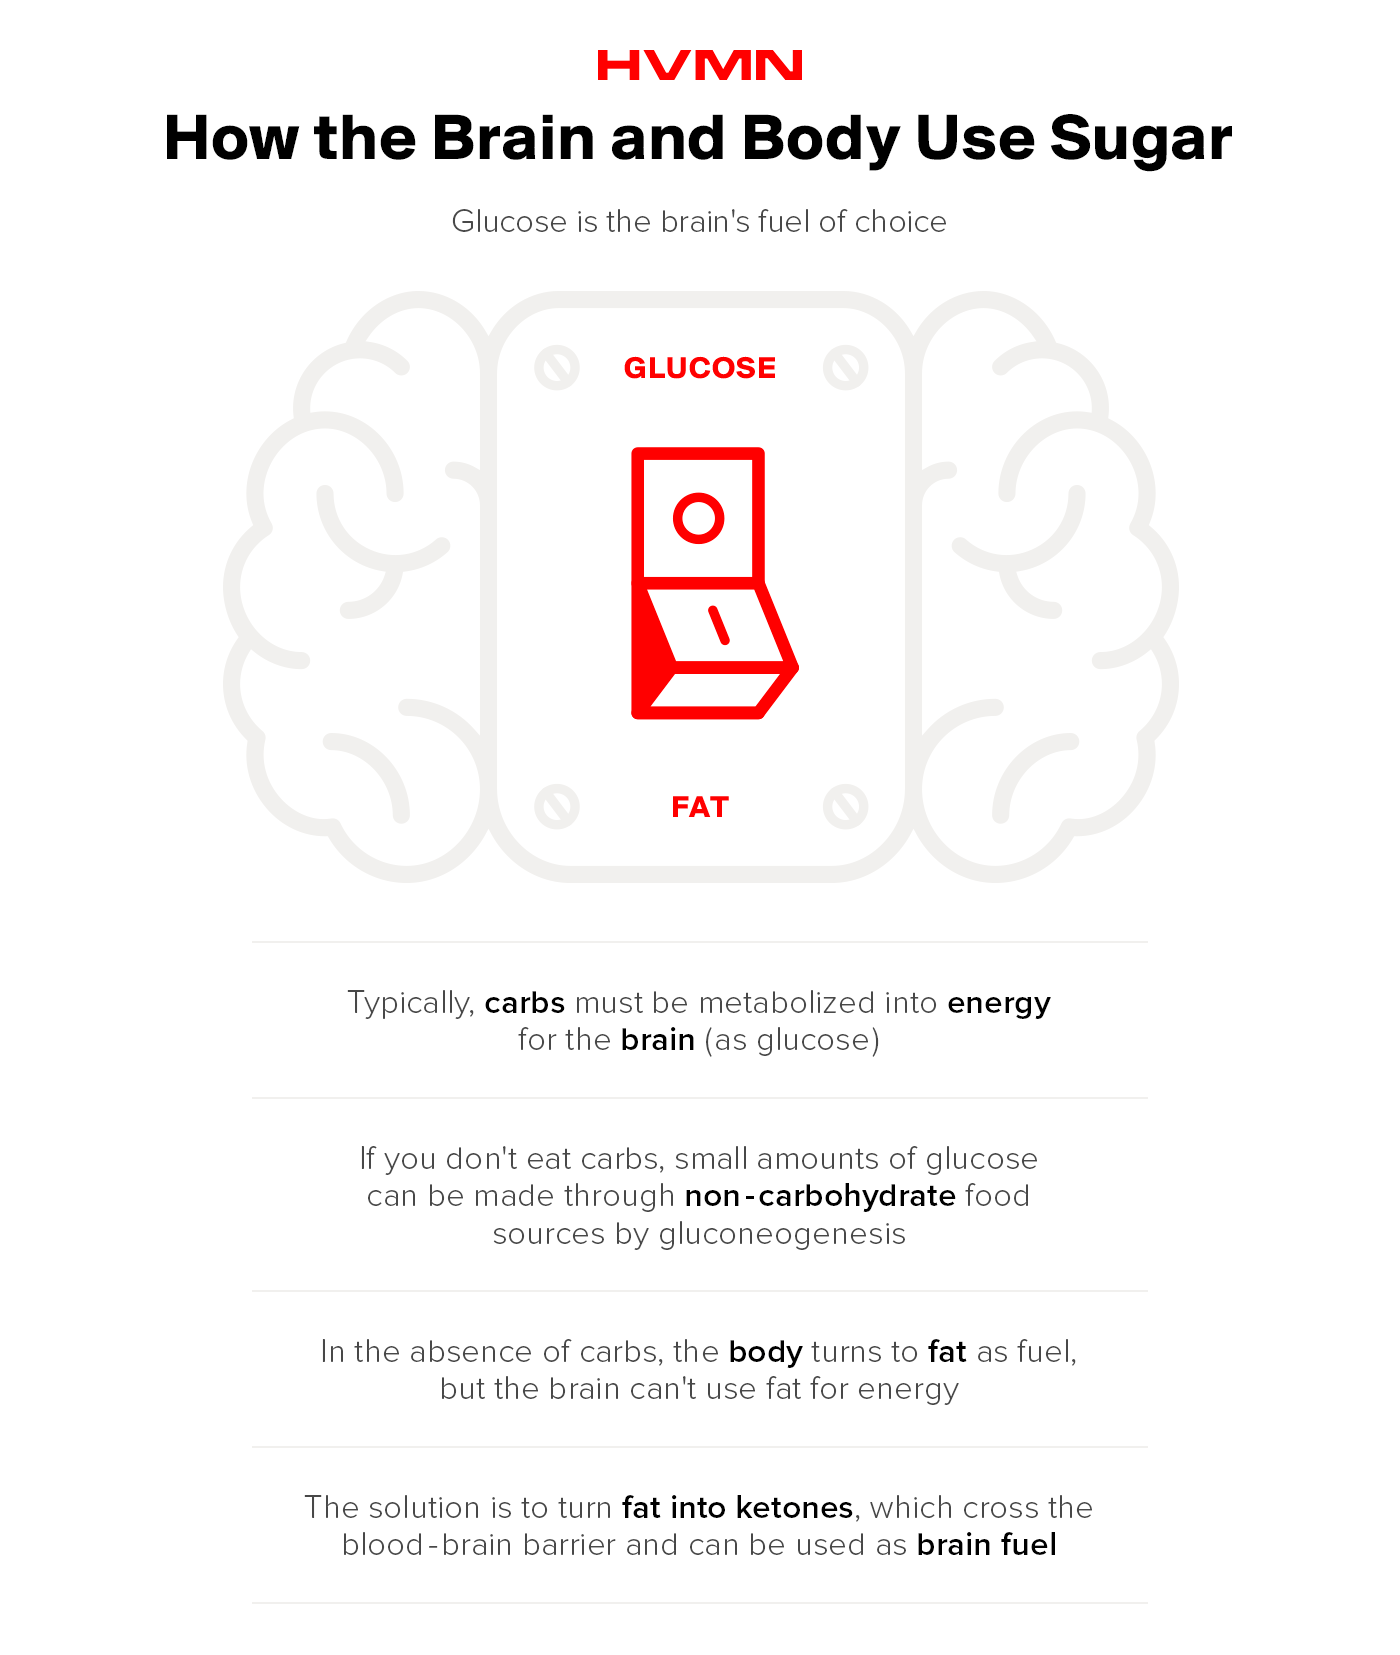 An illustration of a brain, separated by a light switch, showing how the brain and body use sugar